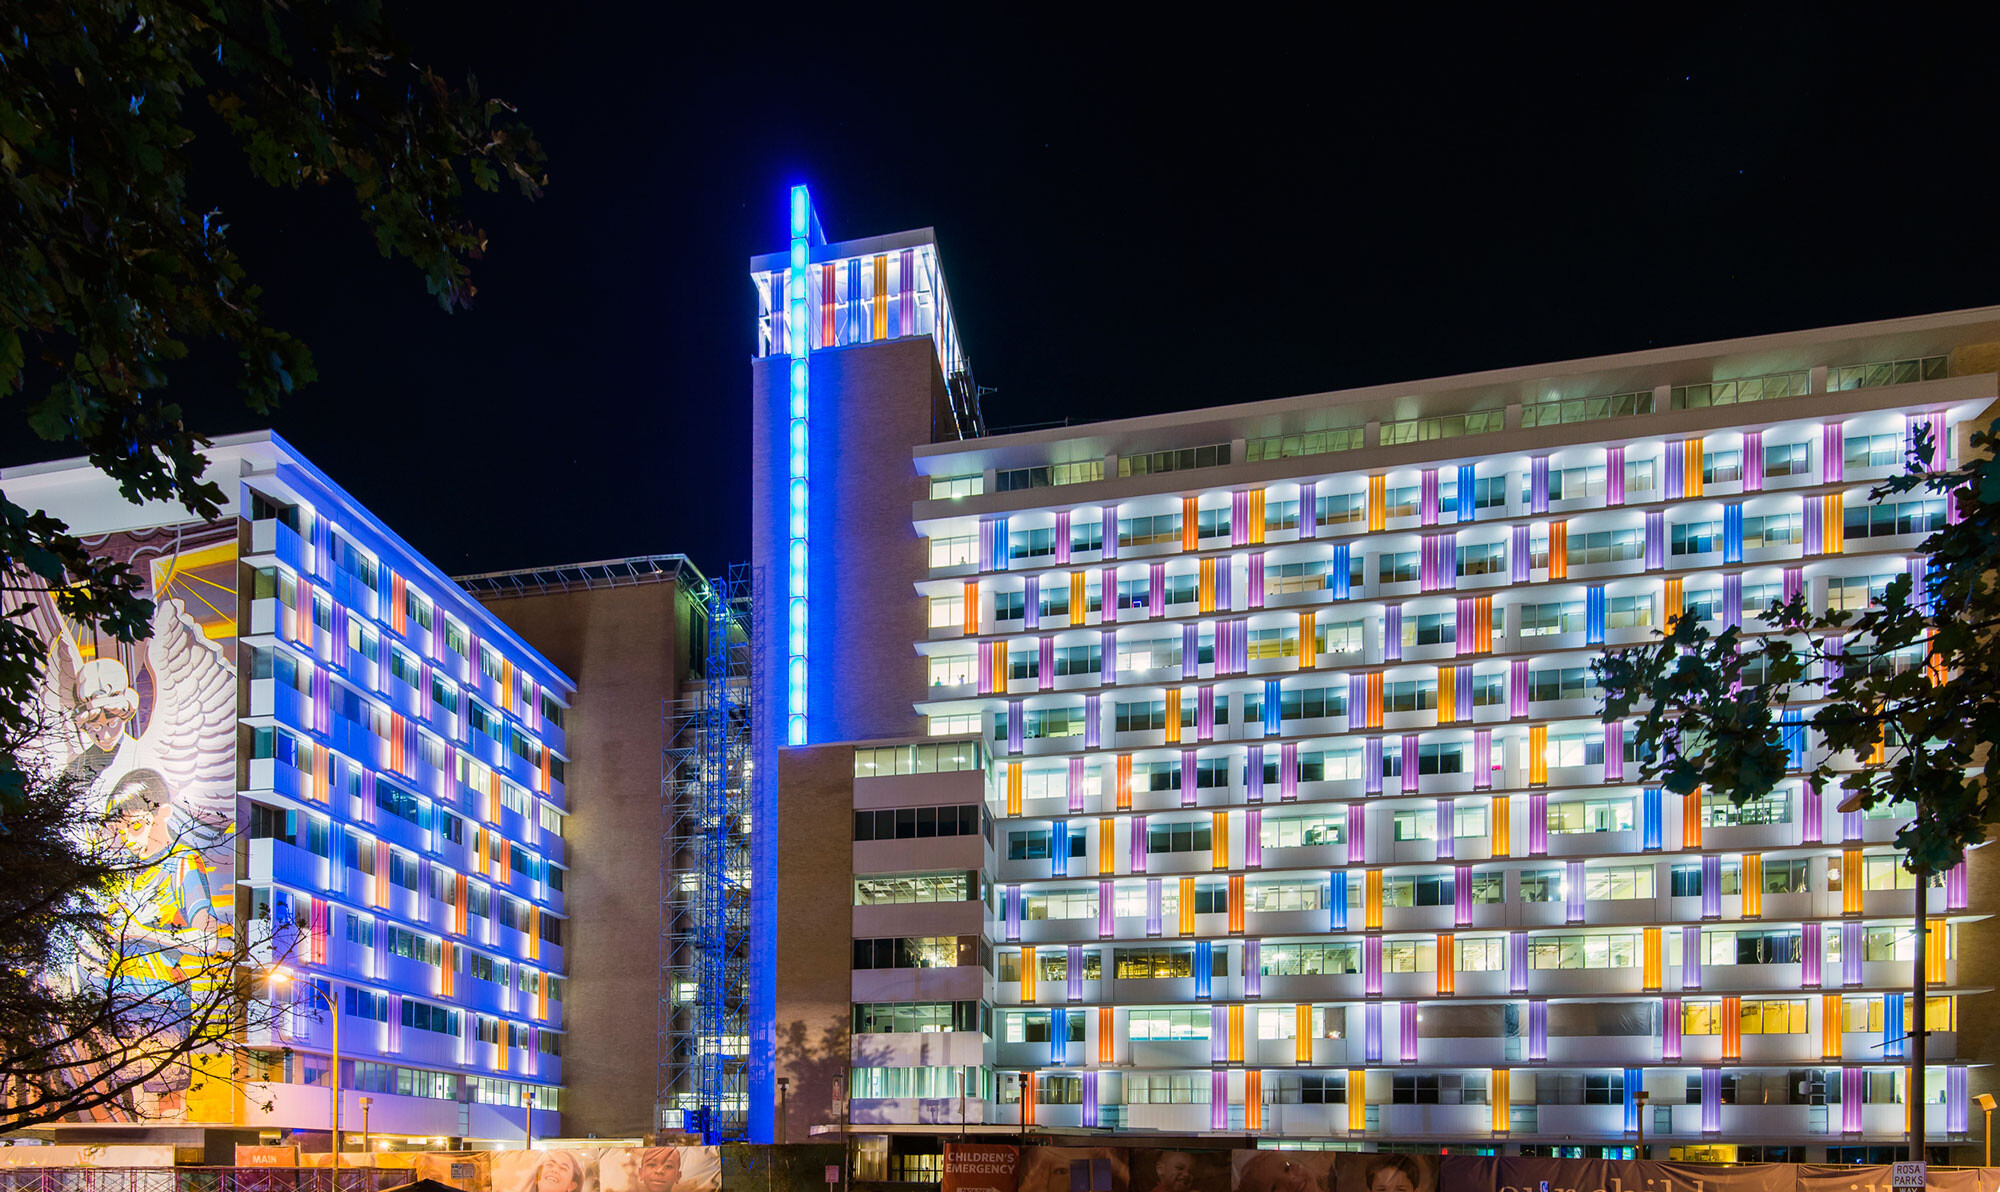 Children's Hospital of San Antonio, San Antonio, TX